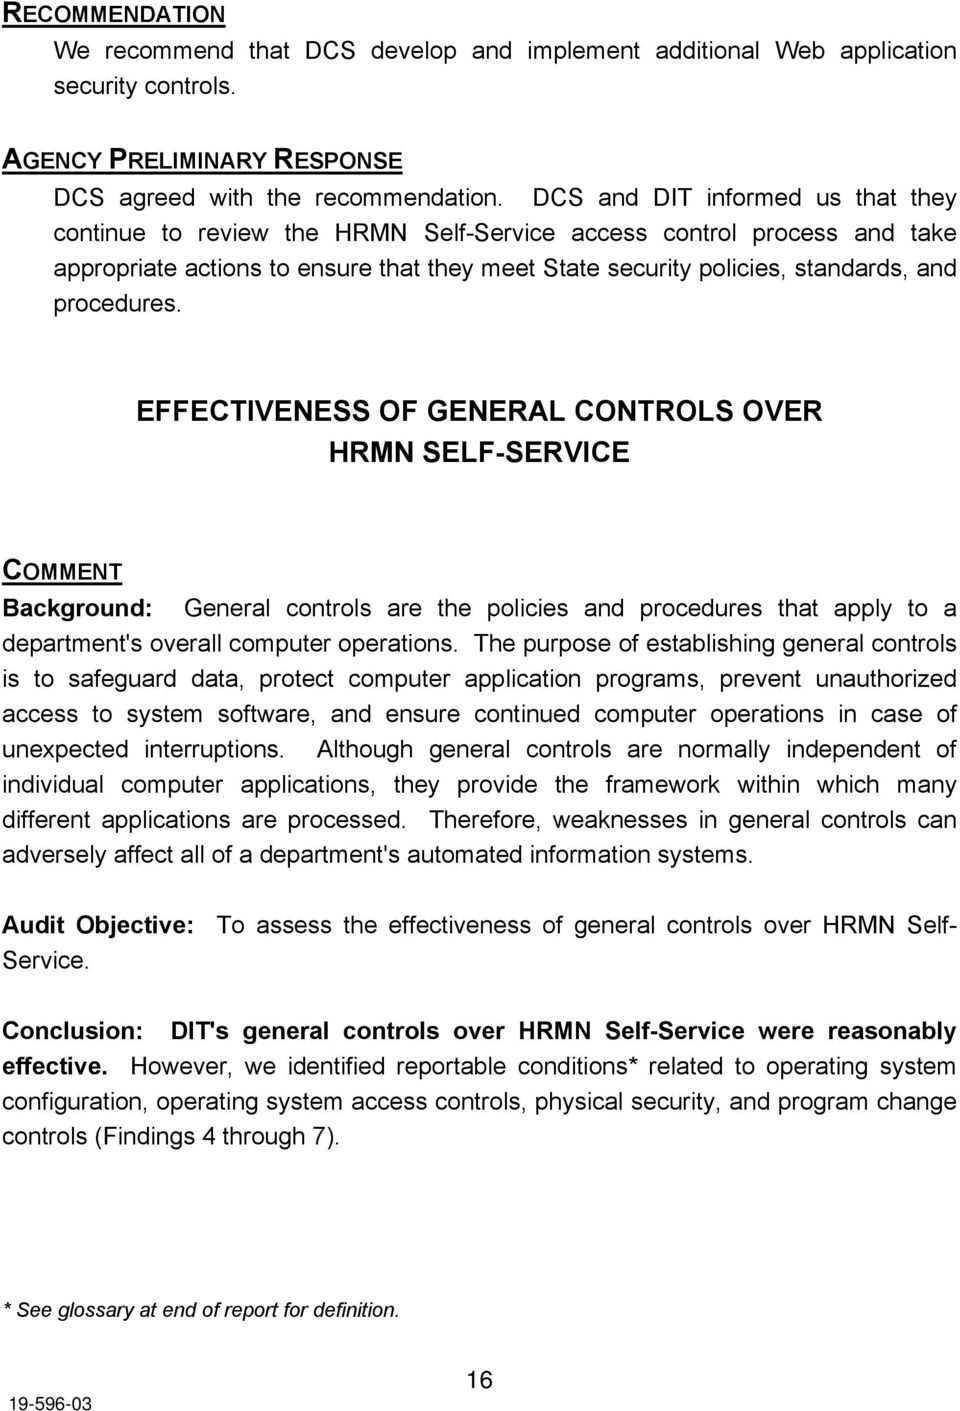 procedures. EFFECTIVENESS OF GENERAL CONTROLS OVER HRMN SELF-SERVICE COMMENT Background: General controls are the policies and procedures that apply to a department's overall computer operations.